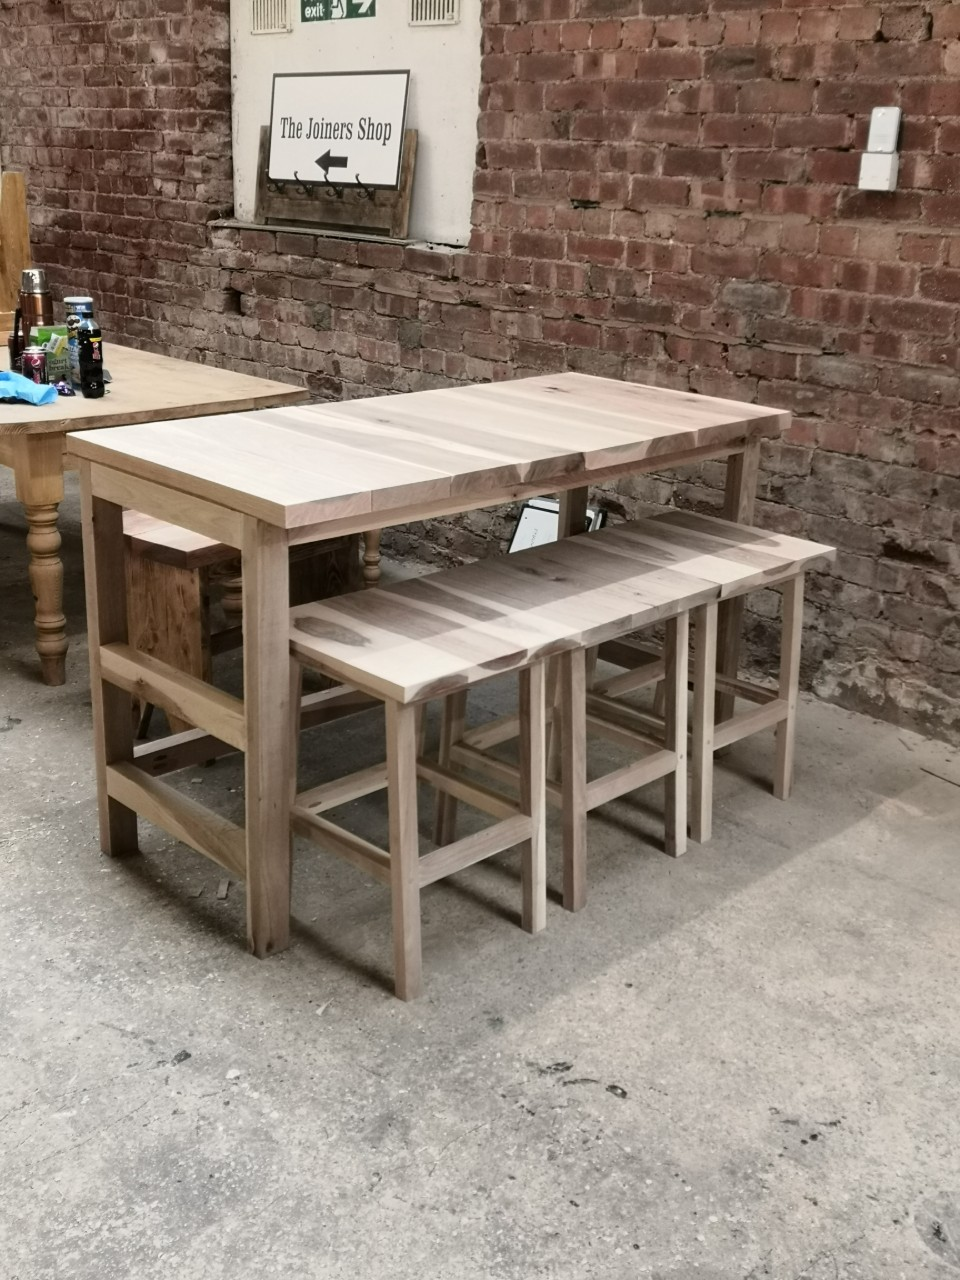 Garden table and stools built with oak sleepers